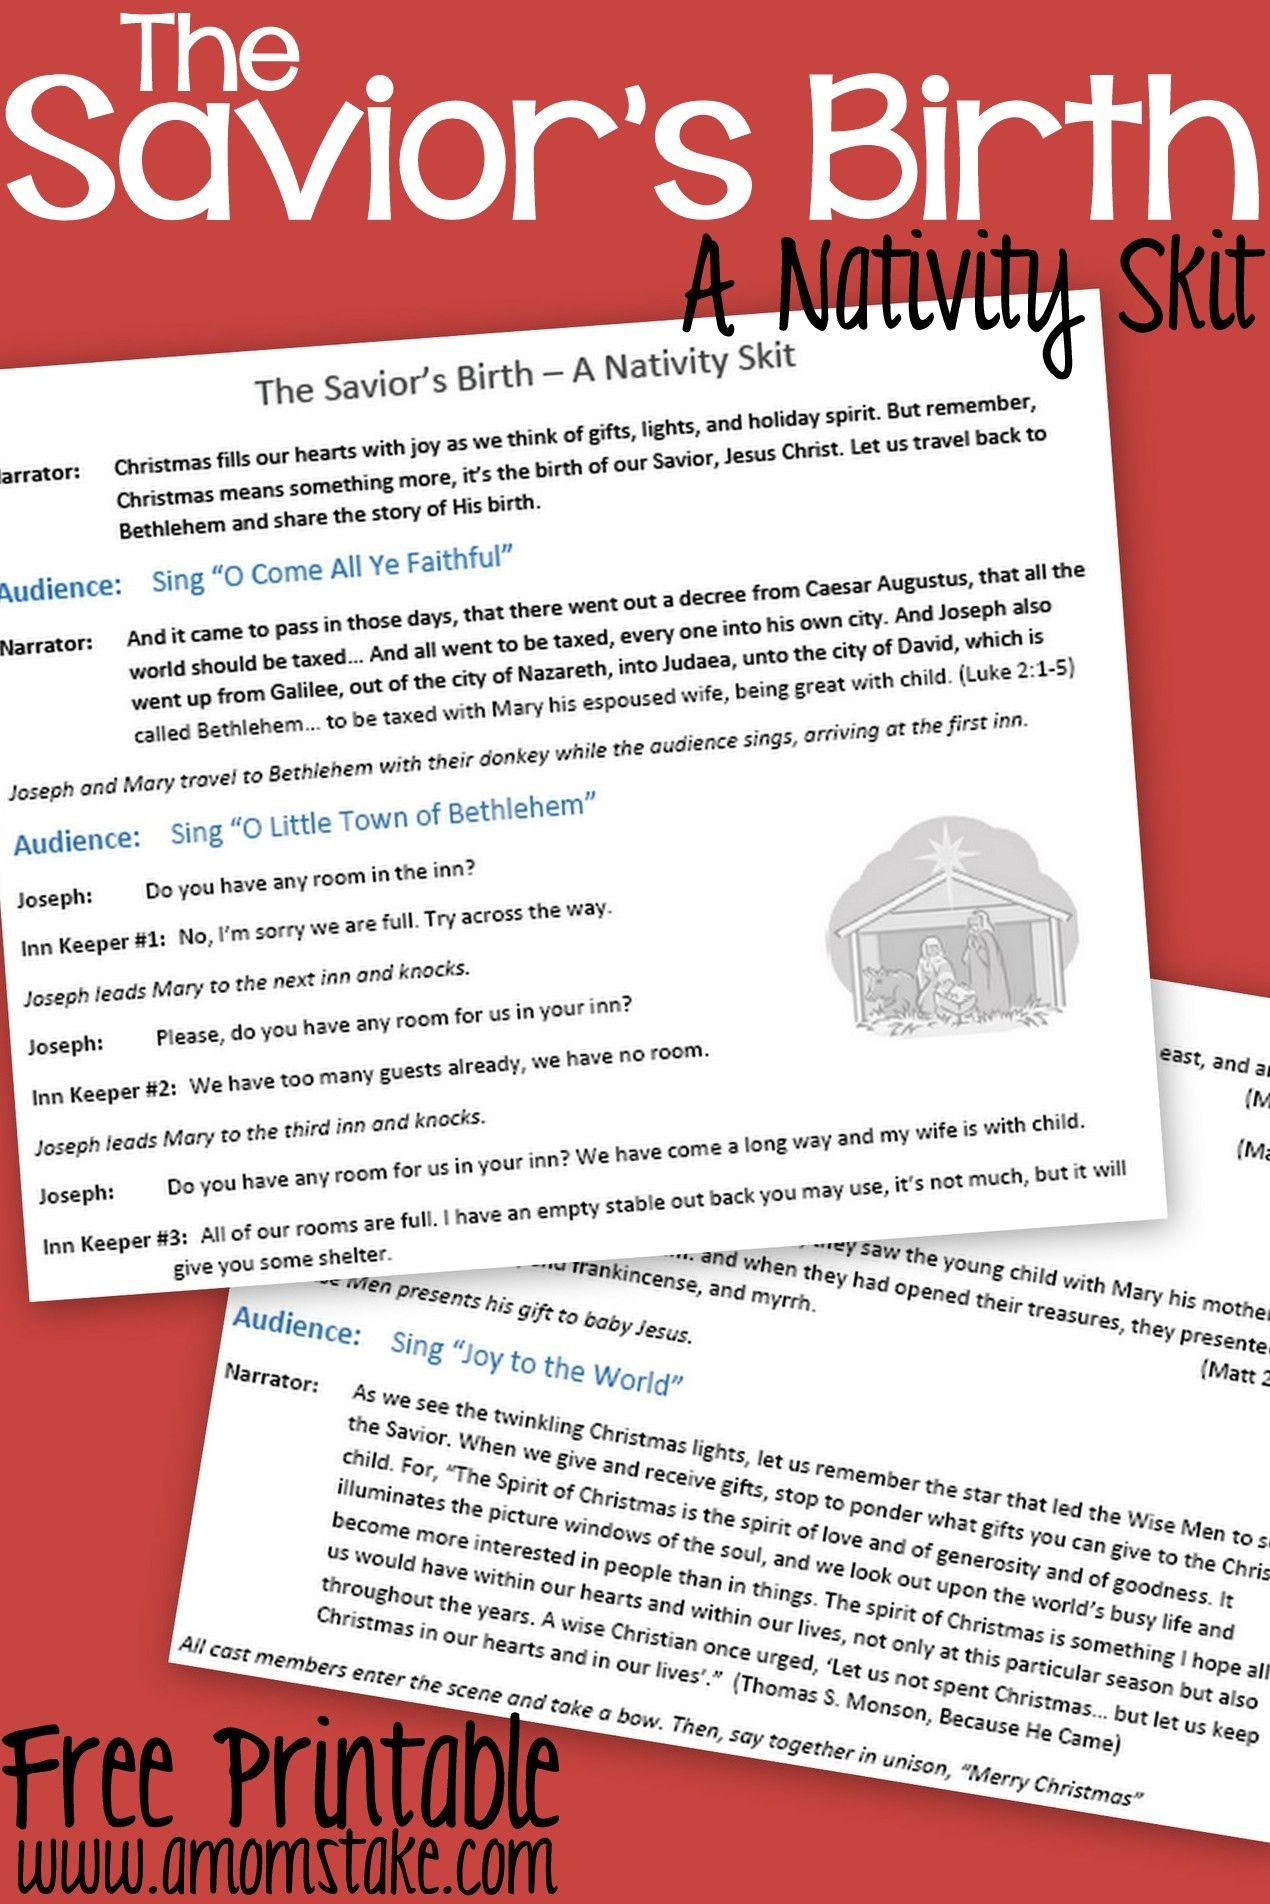 Free Printable Nativity Skit To Act Out The Birth Of The Savior - Free Printable Christmas Programs